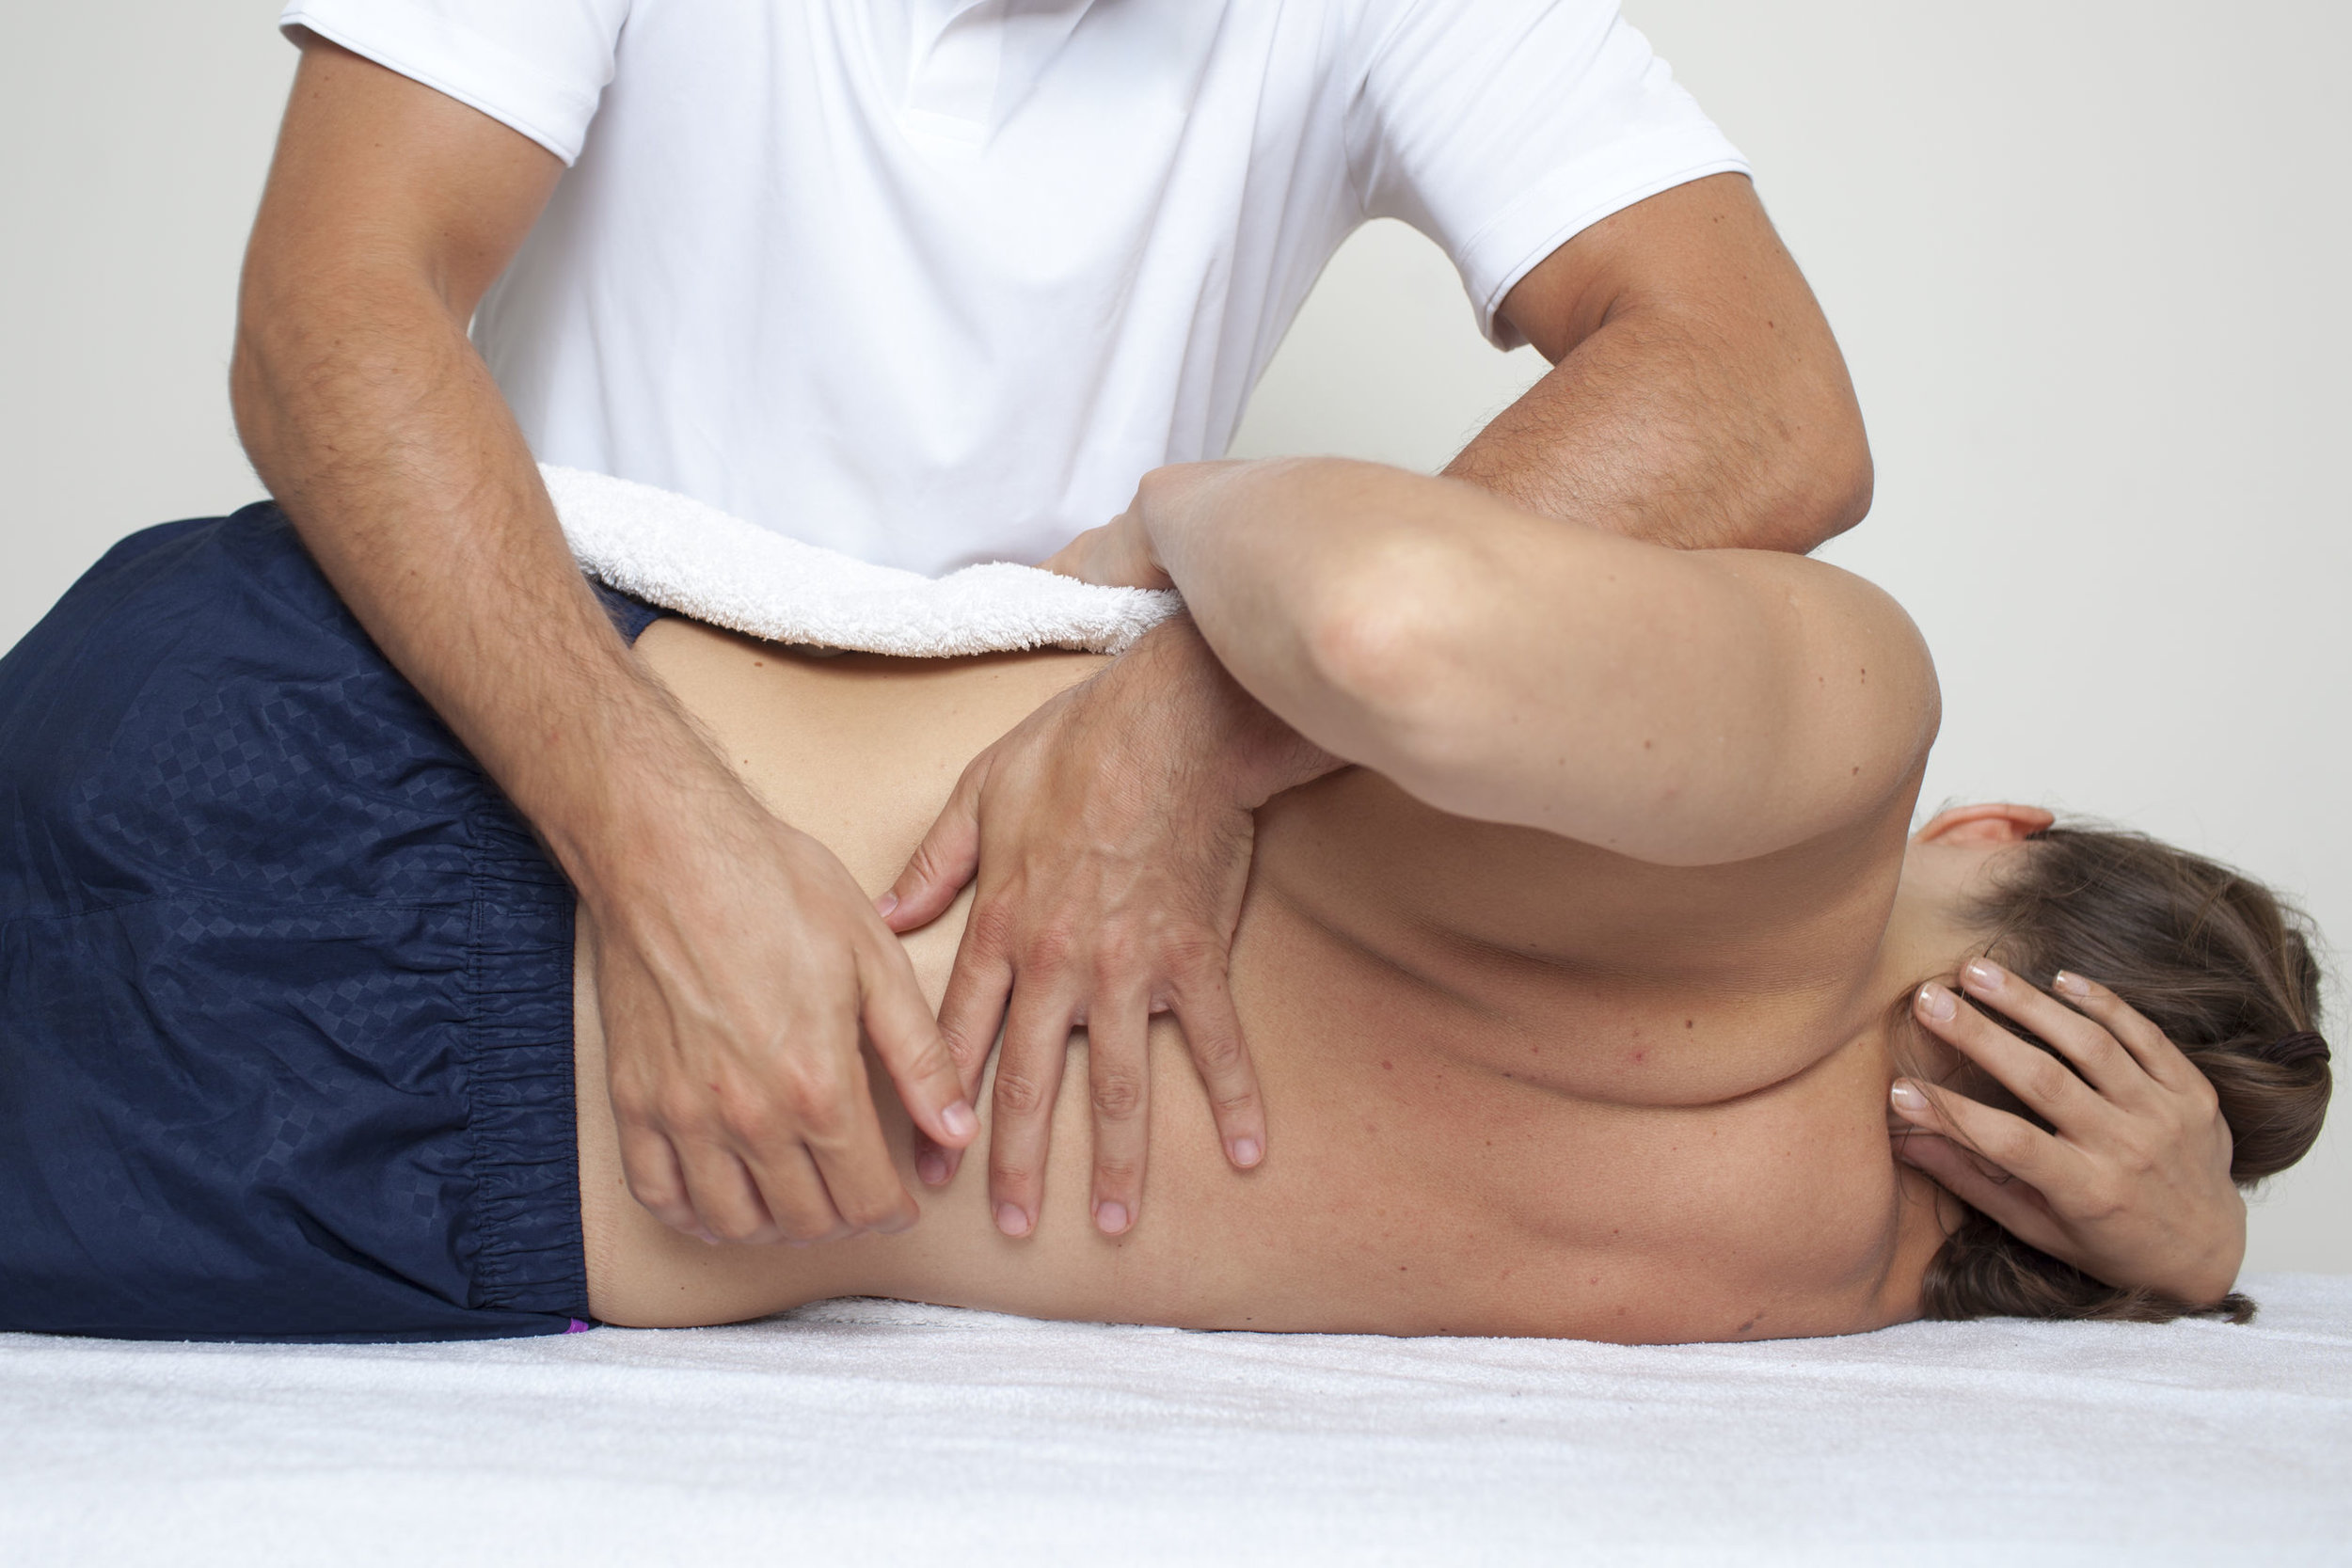 Studies have shown that spinal manipulation combined with exercise provides the best outcomes for low back pain.